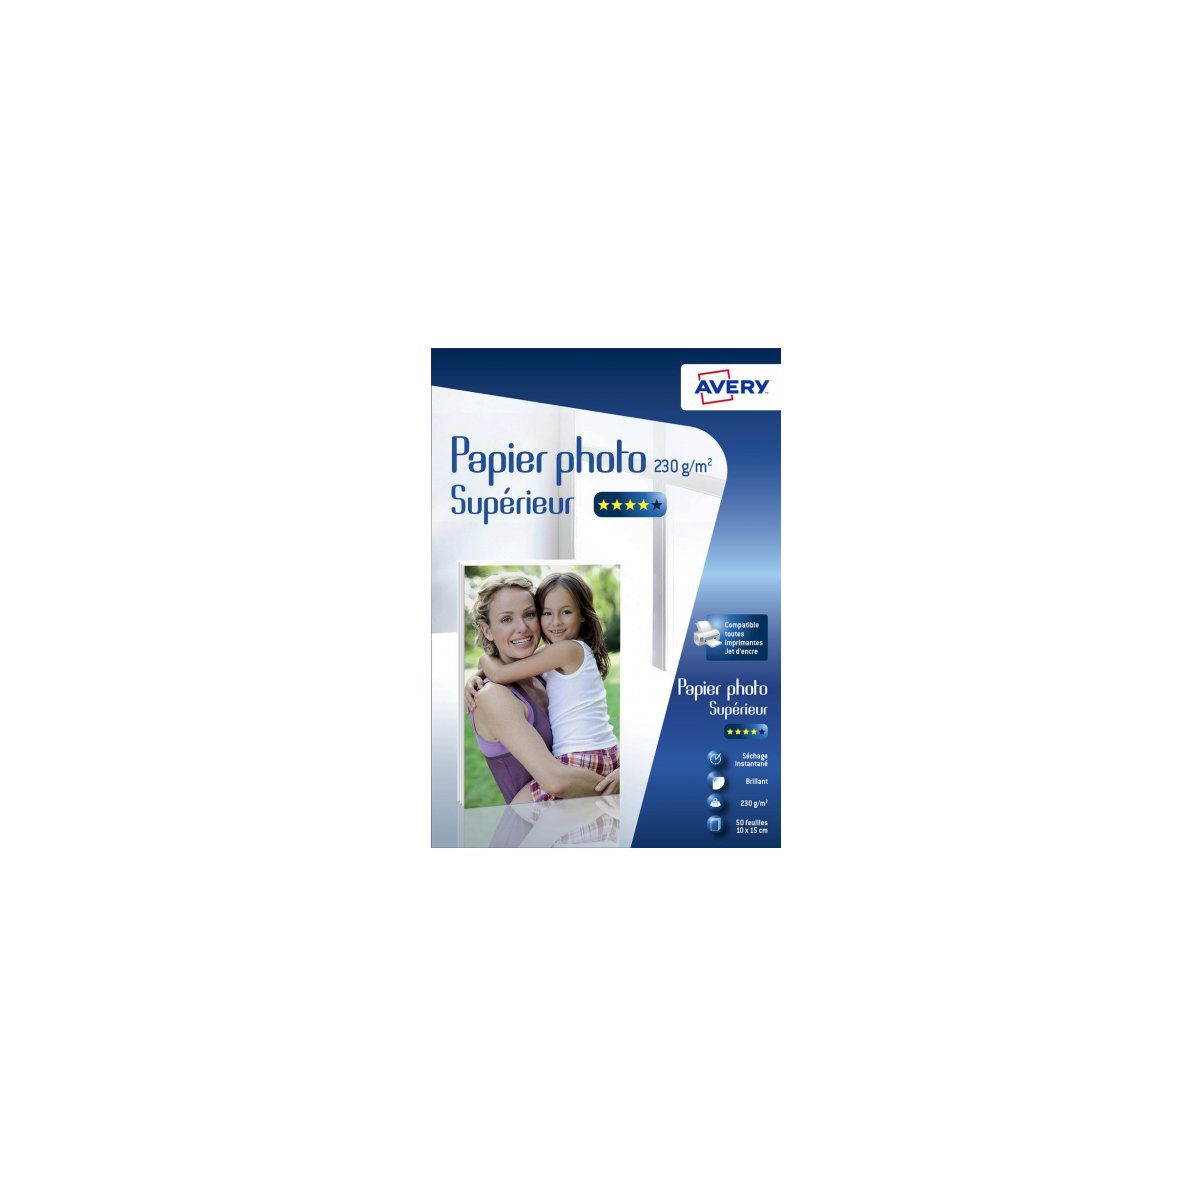 Papier photo AVERY 50 Photos brillantes 10x15 230g/m² (photo)